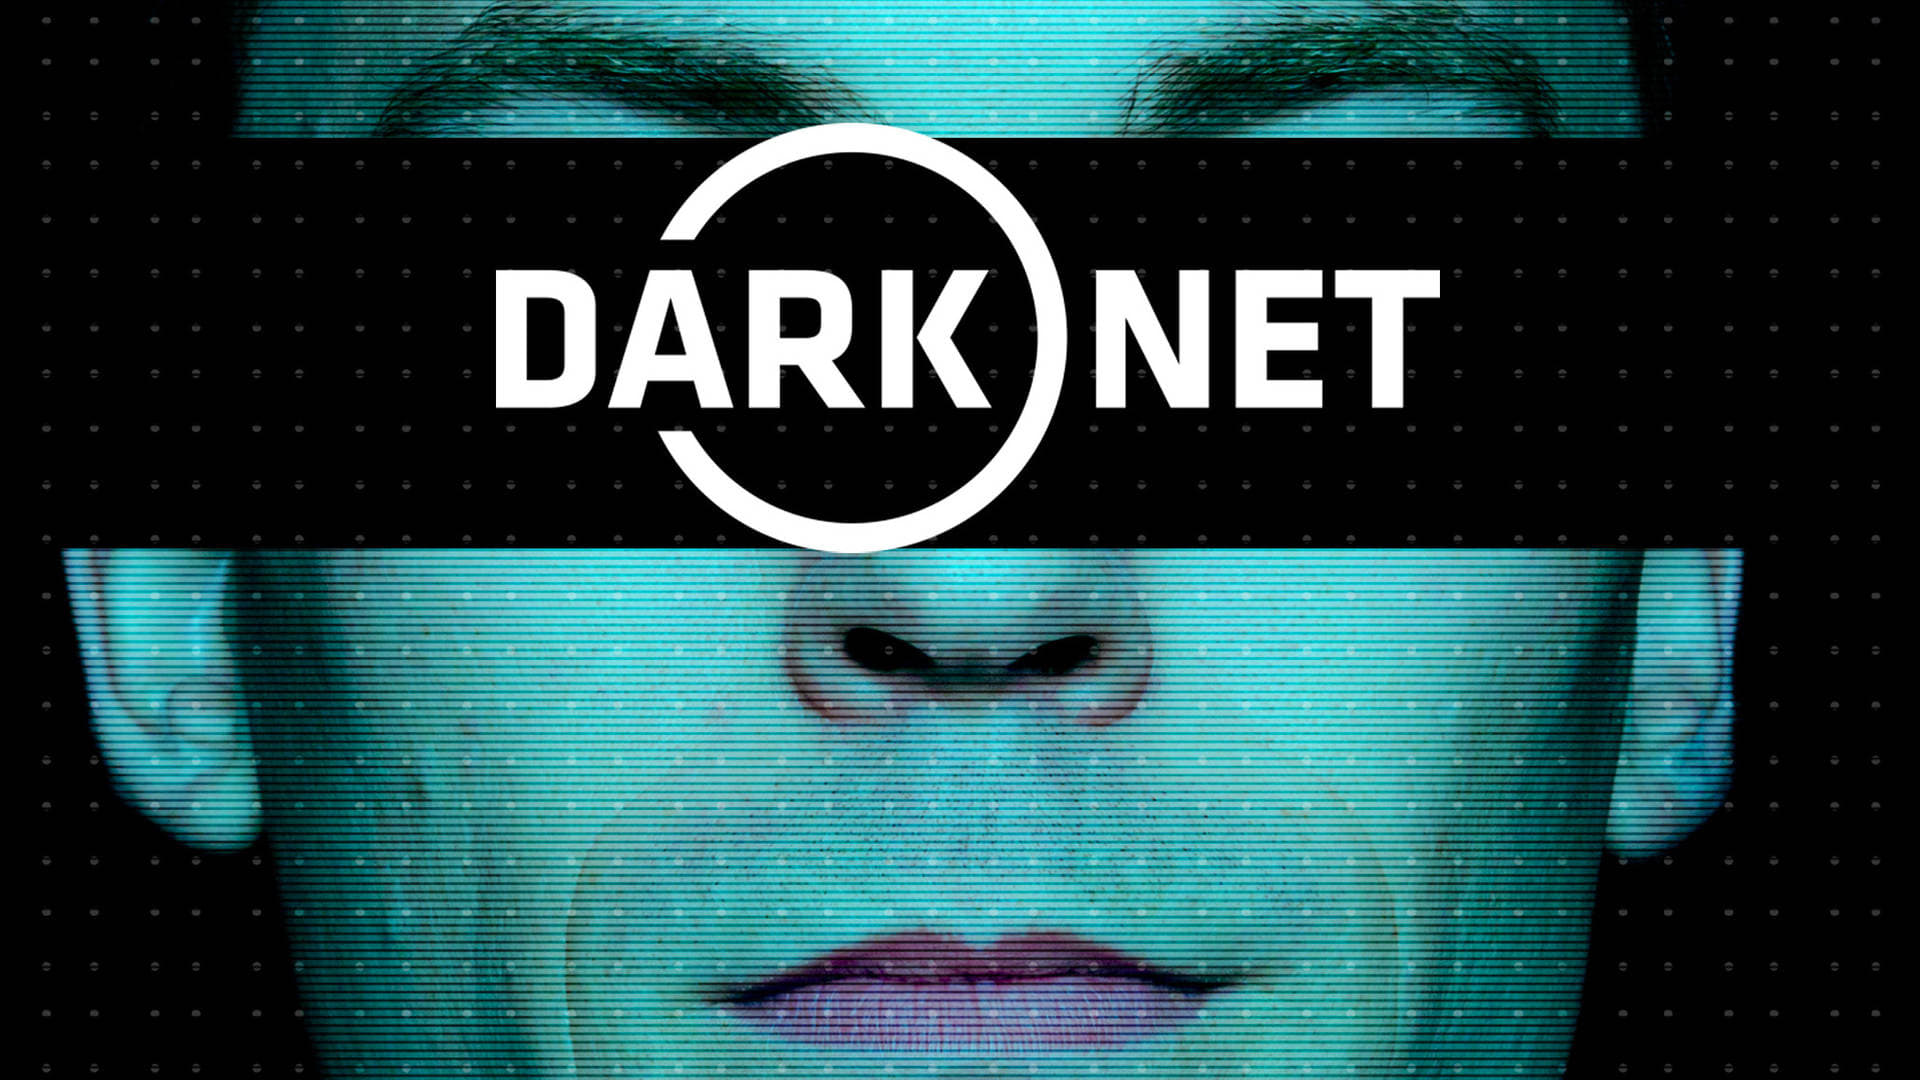 watch dating in the dark online watch series Dating in the dark online watch dating in the dark online  sexy dark on tv thing life if there are still dating sites or eharmony ashley madison: true blood.